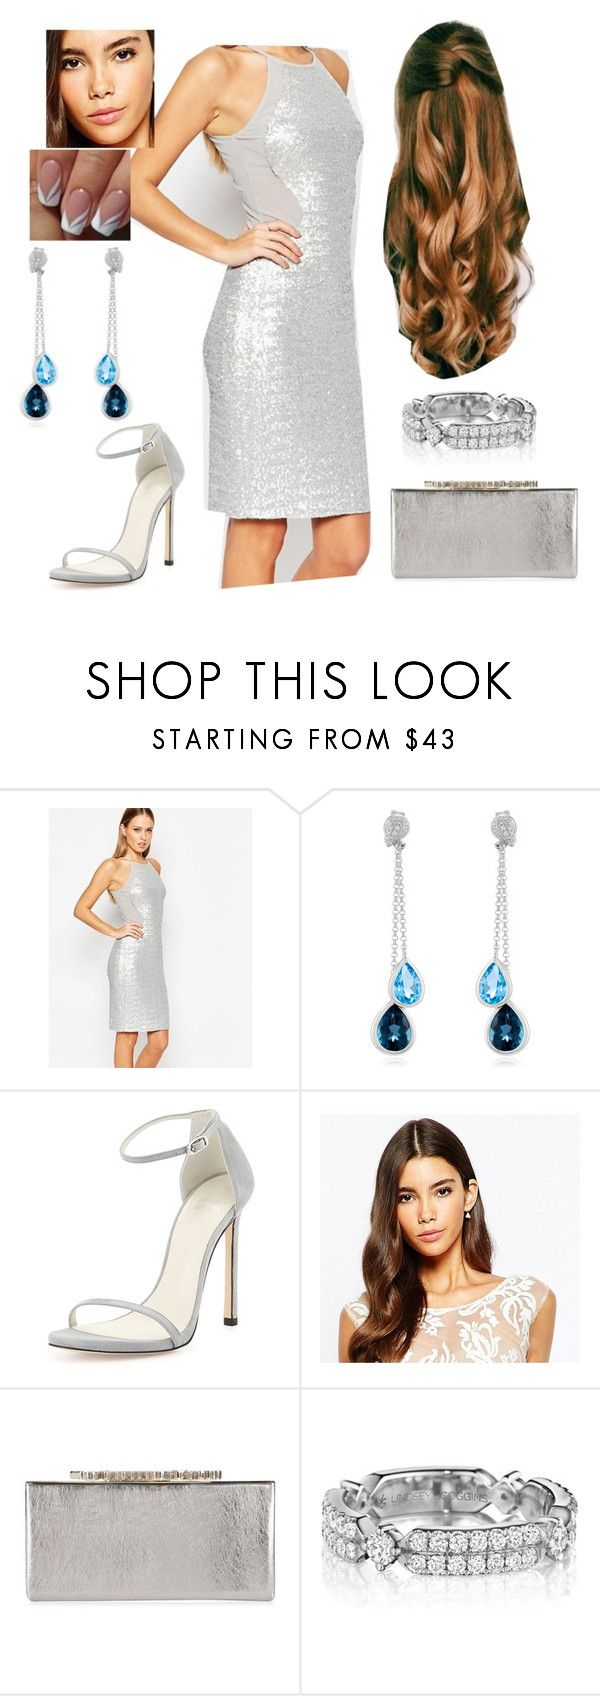 """Bez tytułu #19908"" by sophies18 ❤ liked on Polyvore featuring TFNC, Effy Jewelry, Stuart Weitzman, Love Triangle and Jimmy Choo"